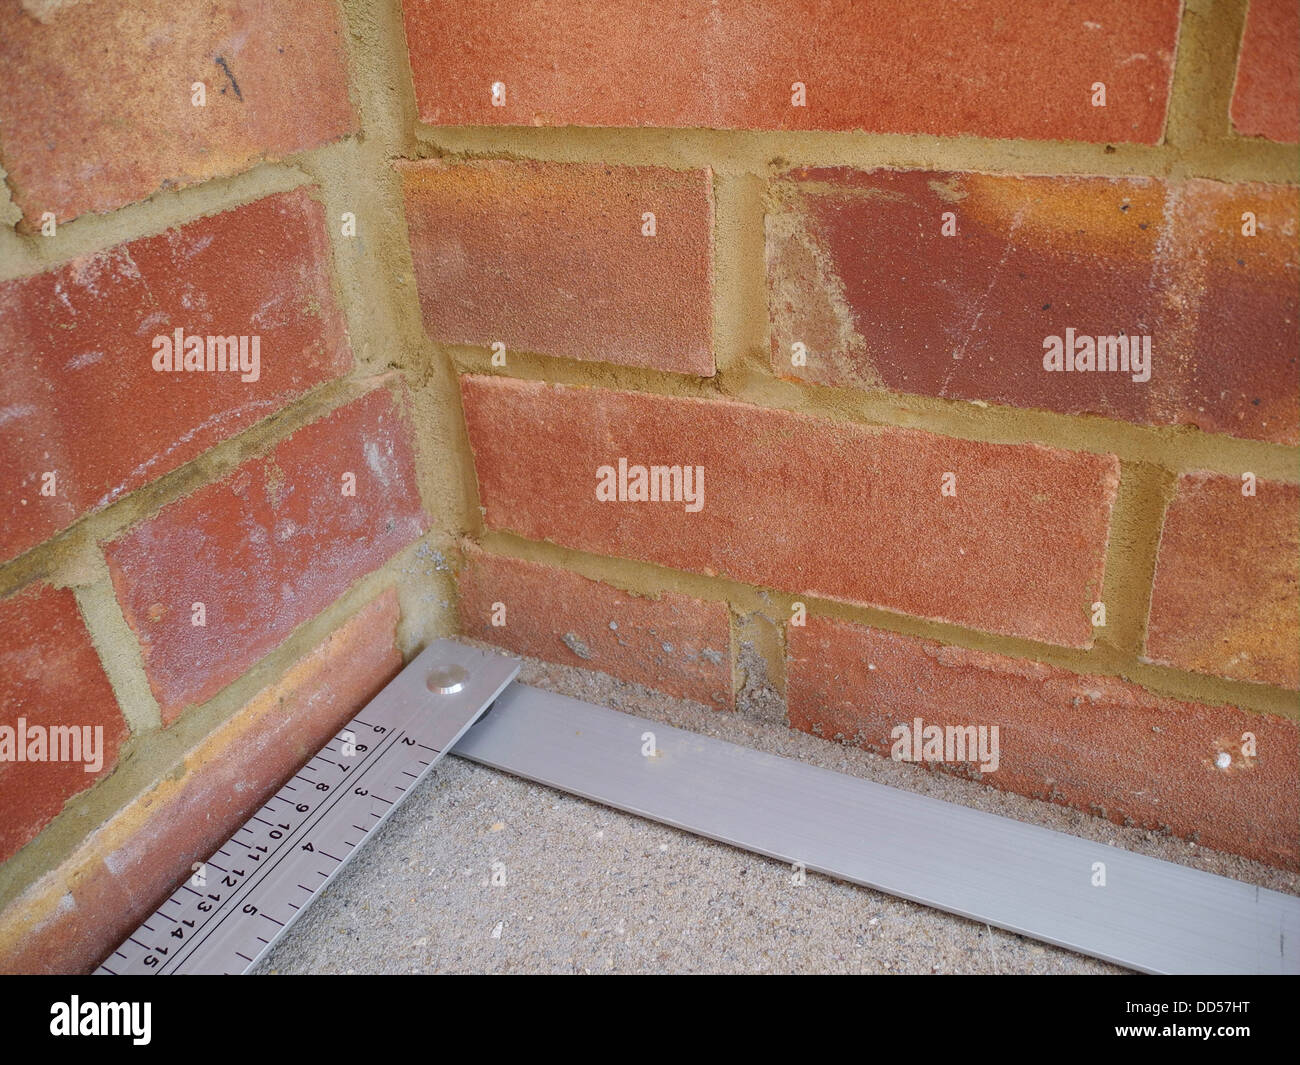 Bad brickwork badly laid bricks - Stock Image